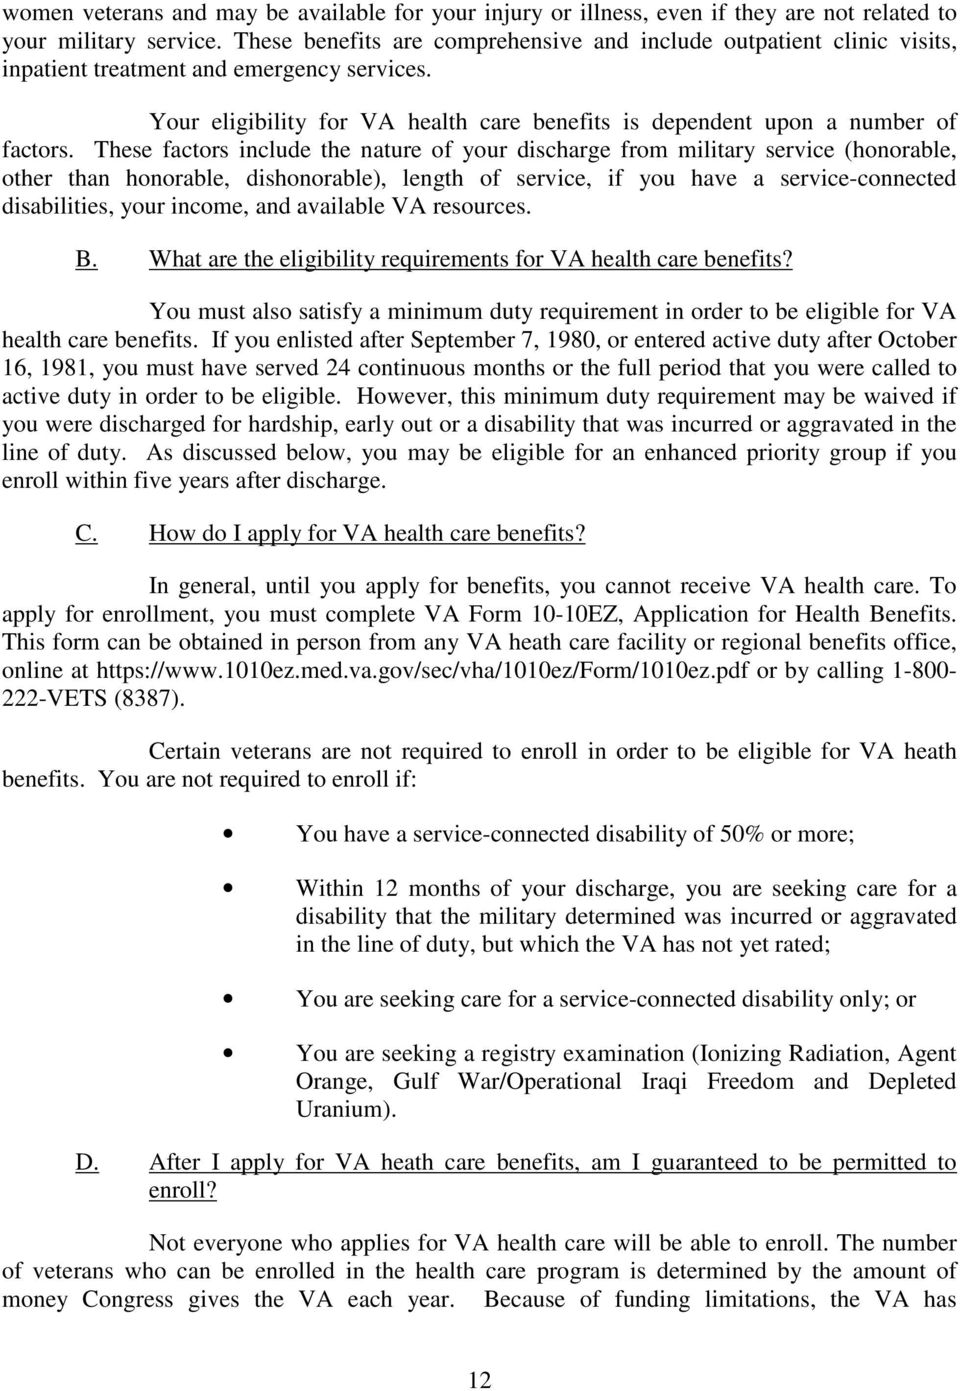 These factors include the nature of your discharge from military service (honorable, other than honorable, dishonorable), length of service, if you have a service-connected disabilities, your income,